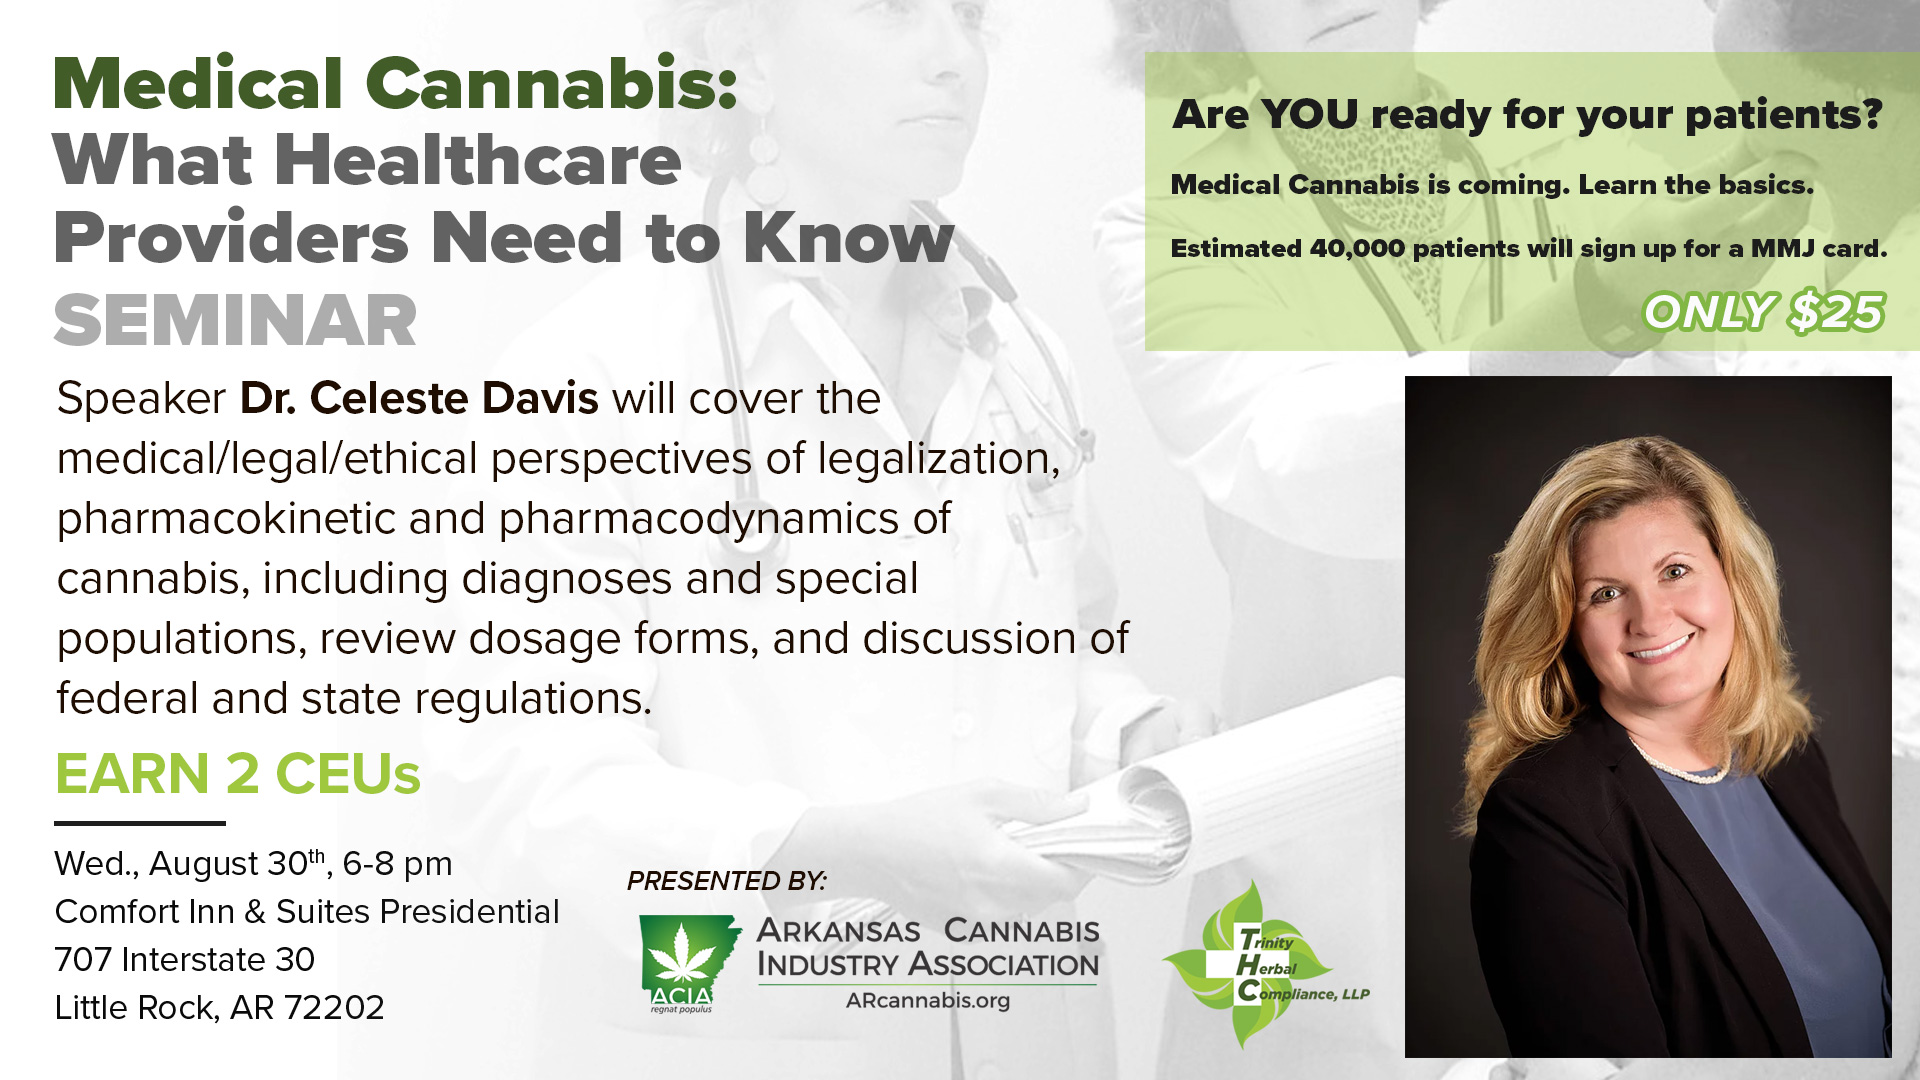 CANCELLED – Medical Cannabis Seminar: What Healthcare Providers Need to Know